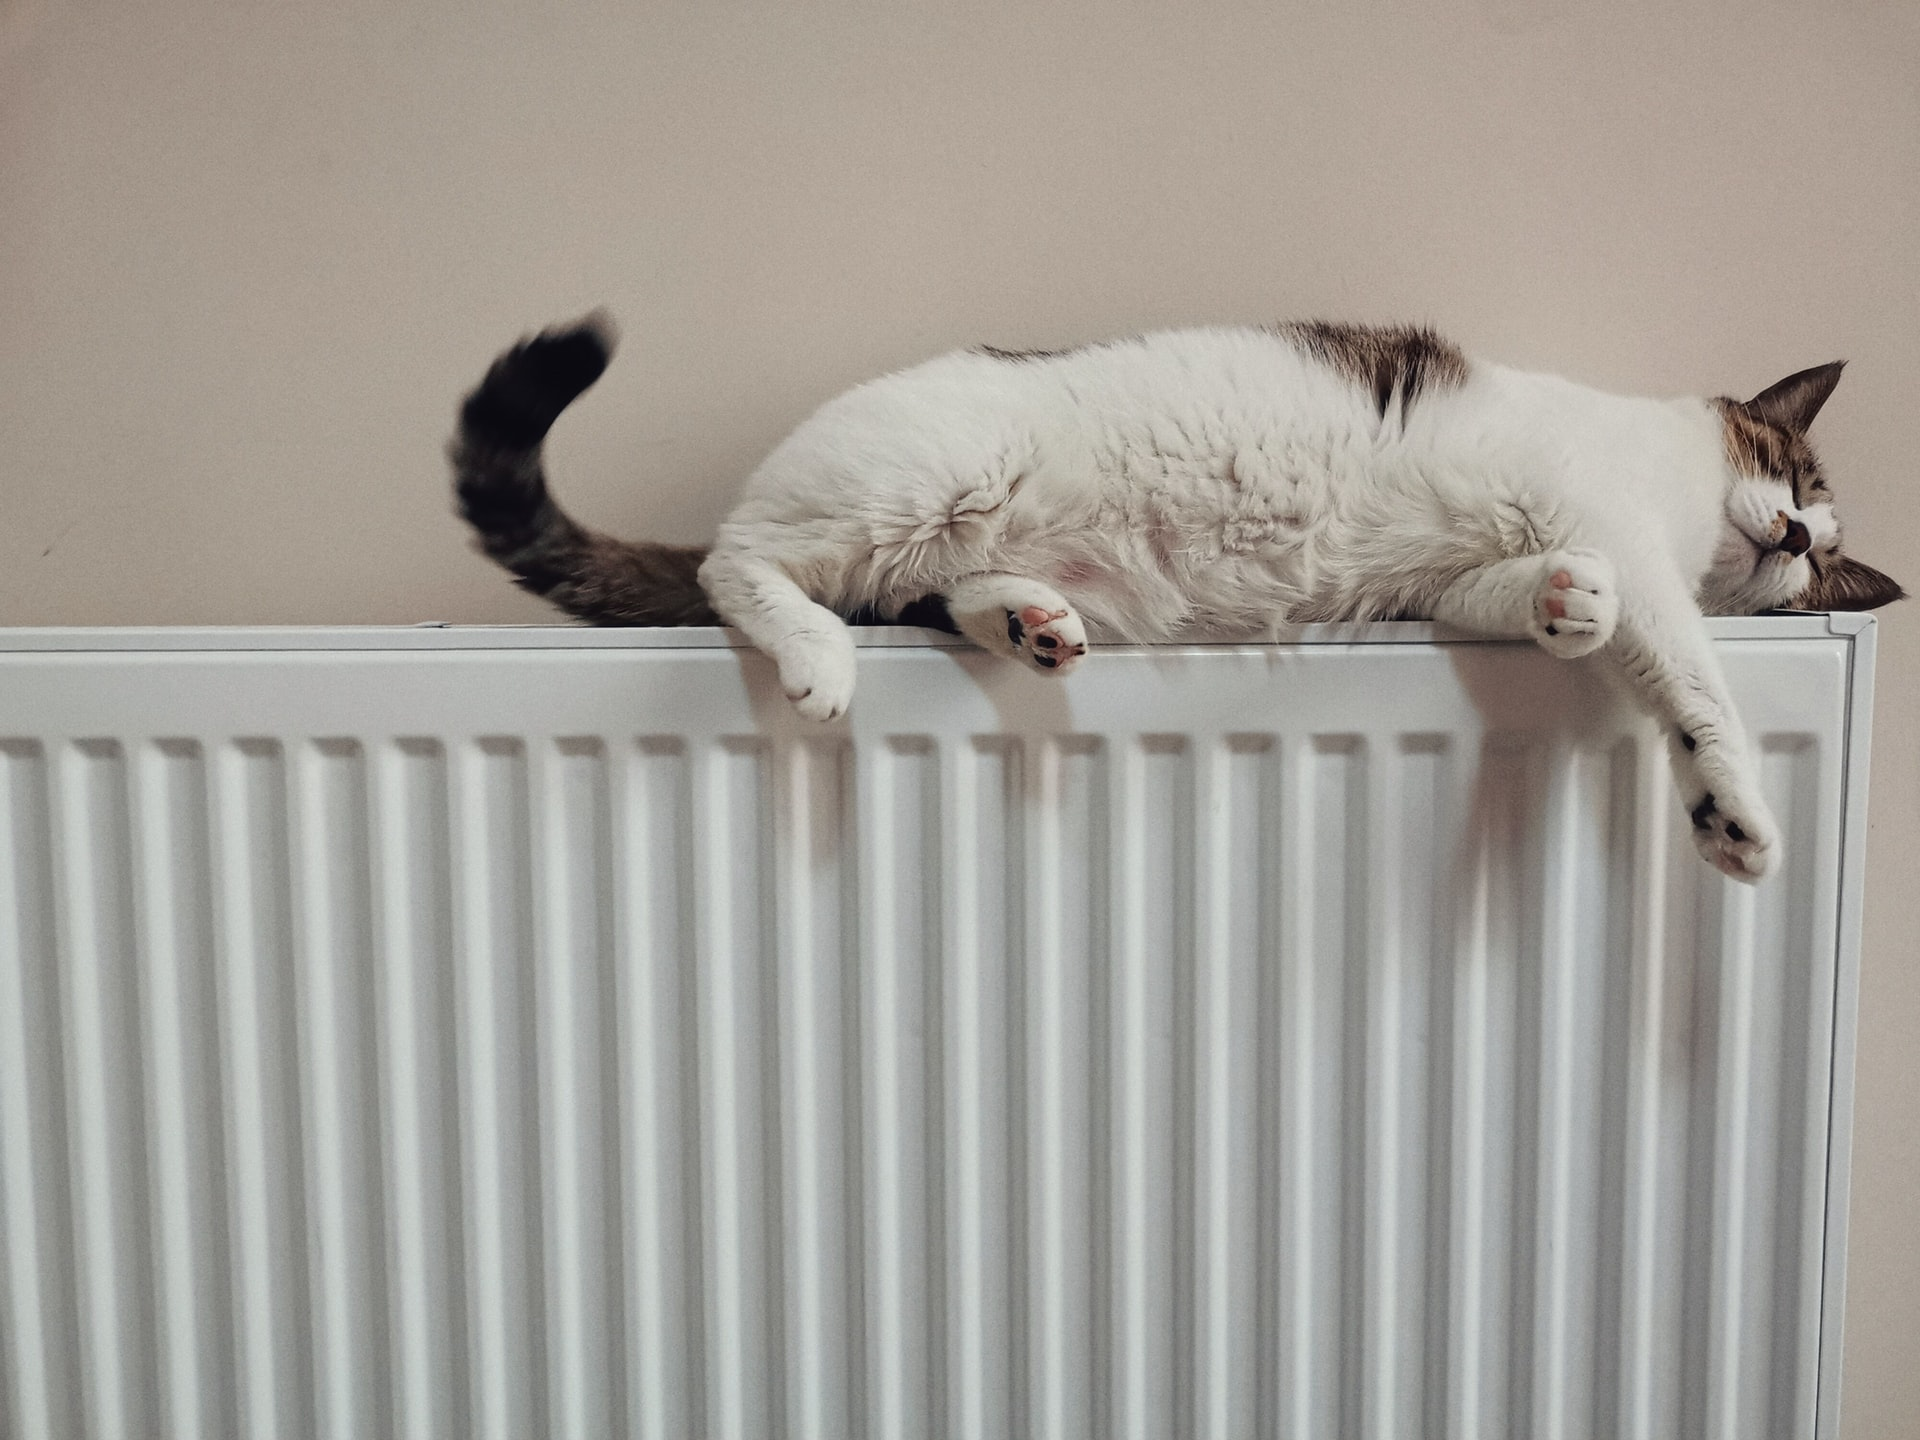 Cat over a radiator